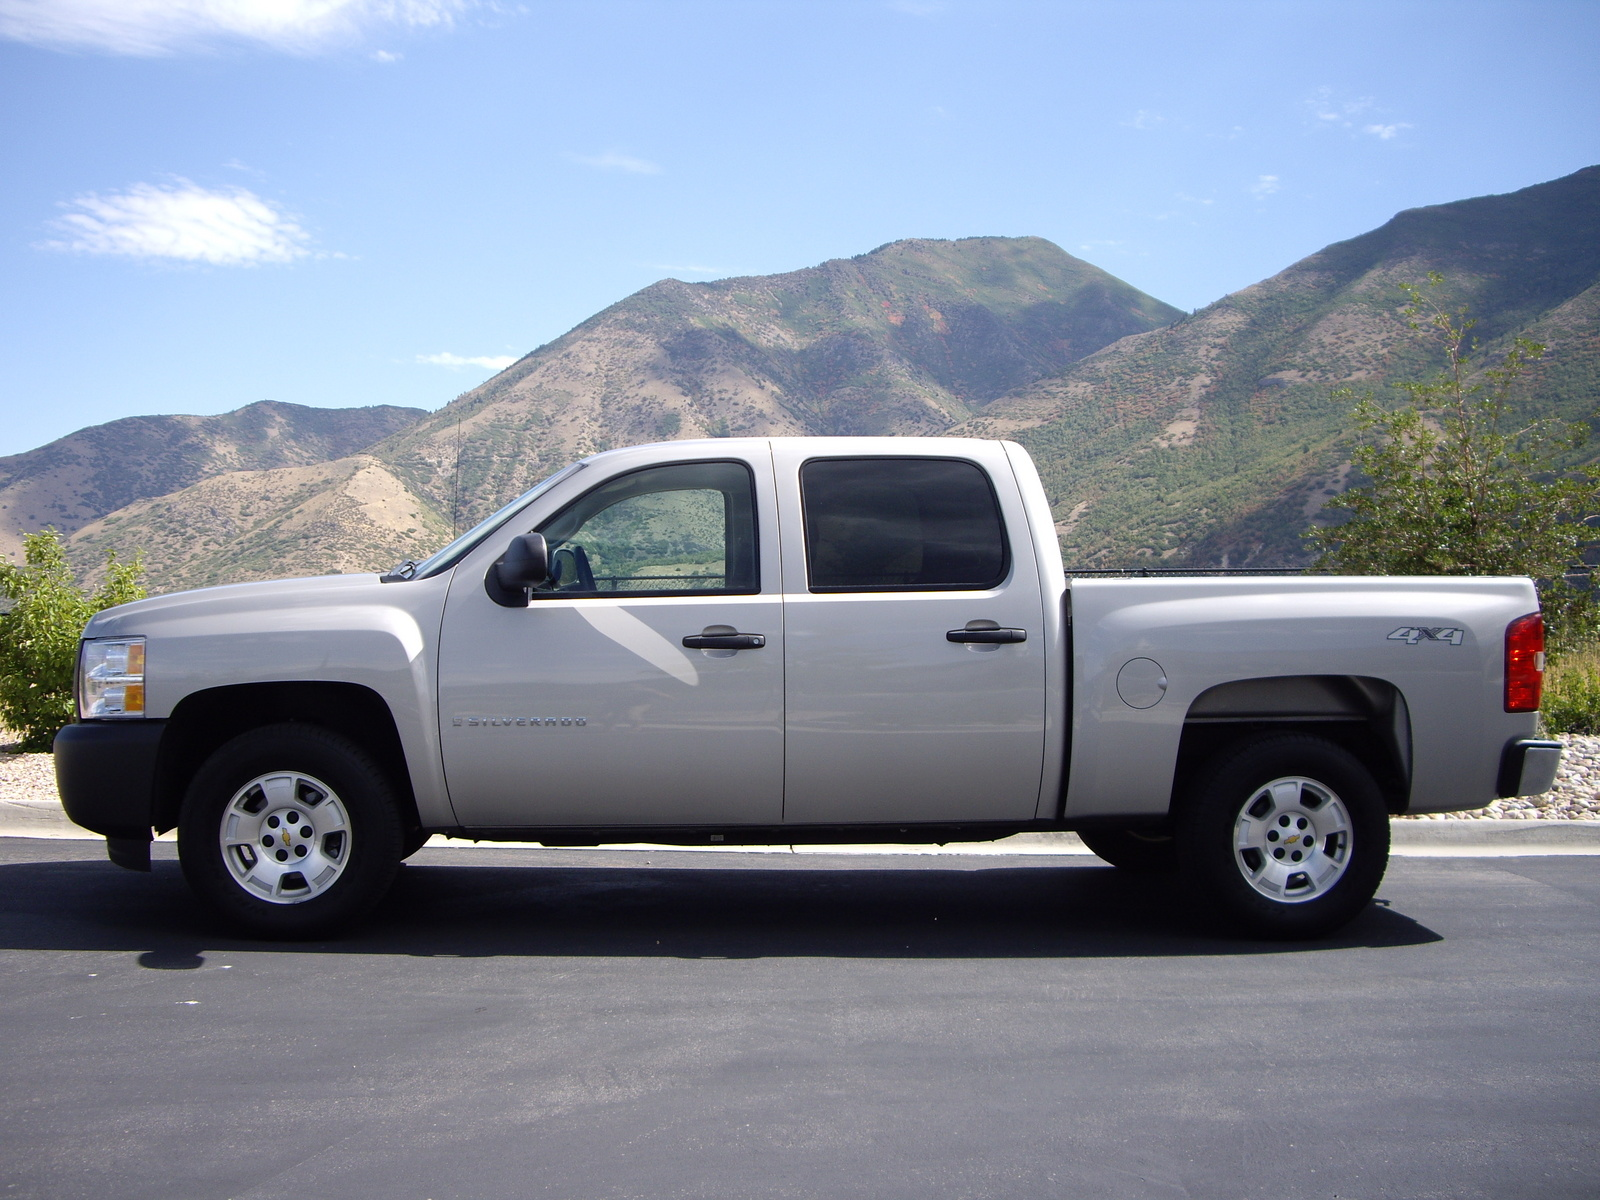 2009 chevrolet silverado 1500 extended cab kelley blue book autos post. Black Bedroom Furniture Sets. Home Design Ideas